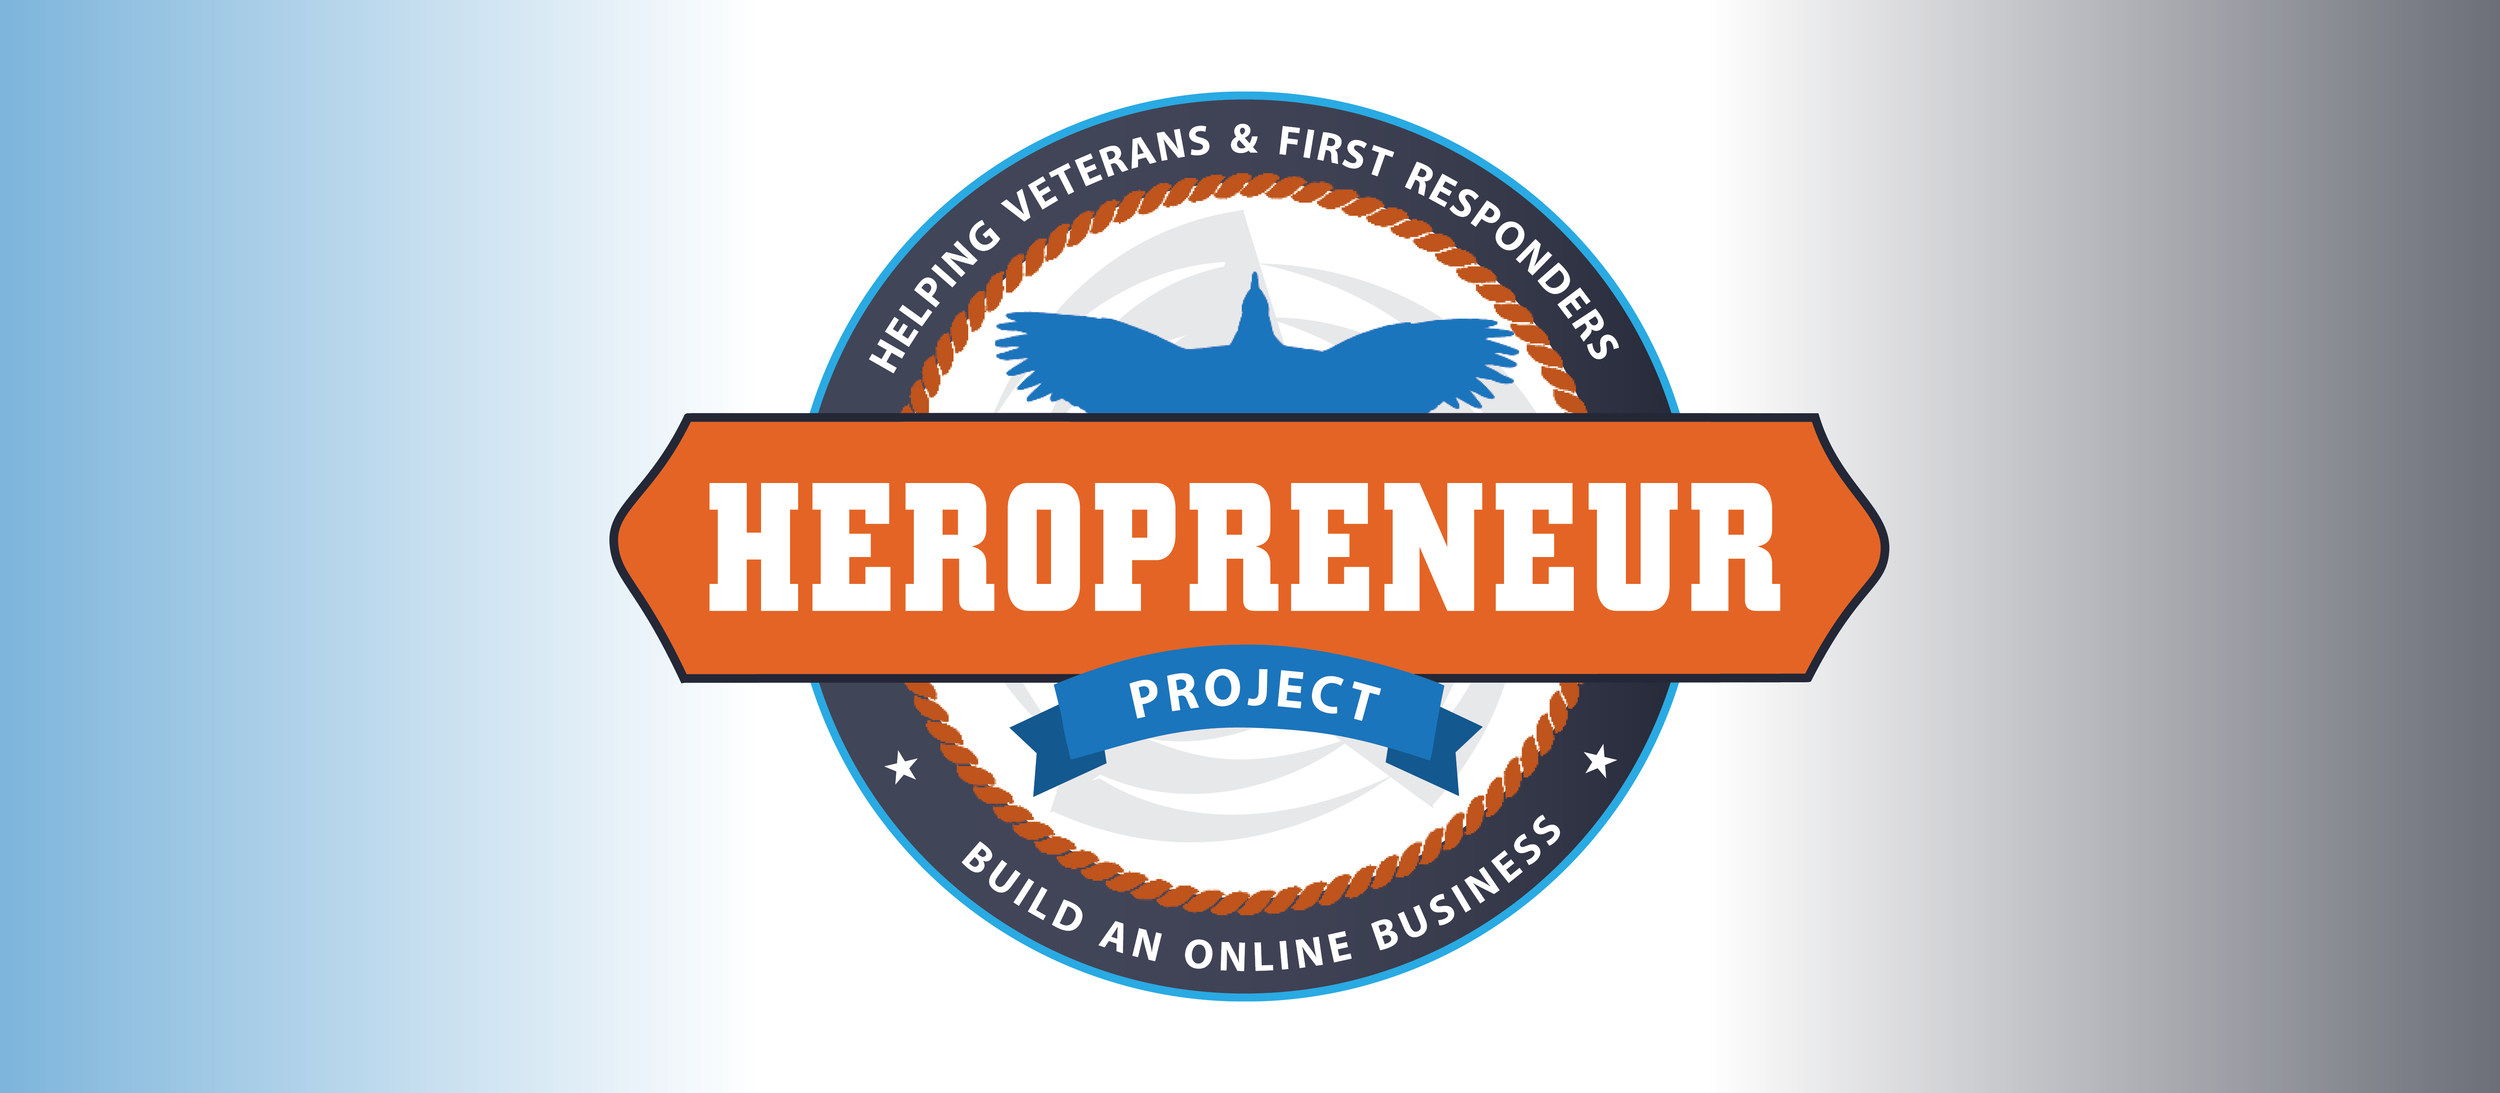 """The final colorized logo showcasing the tagline that we collaborated on:   Helping Veterans & First Responders Build an Online Business  . The logo is meant to look badge-like as well as reminiscent of a medal, borrowing elements from the firefighters logo. I also made sure to focus on the """"hero"""" aspect with the use of a bird in flight, and added a rope accent to suggest """"first responder."""" The chosen colors coordinate with DG's   Second Half Comeback   brand and podcast, which is his umbrella brand."""